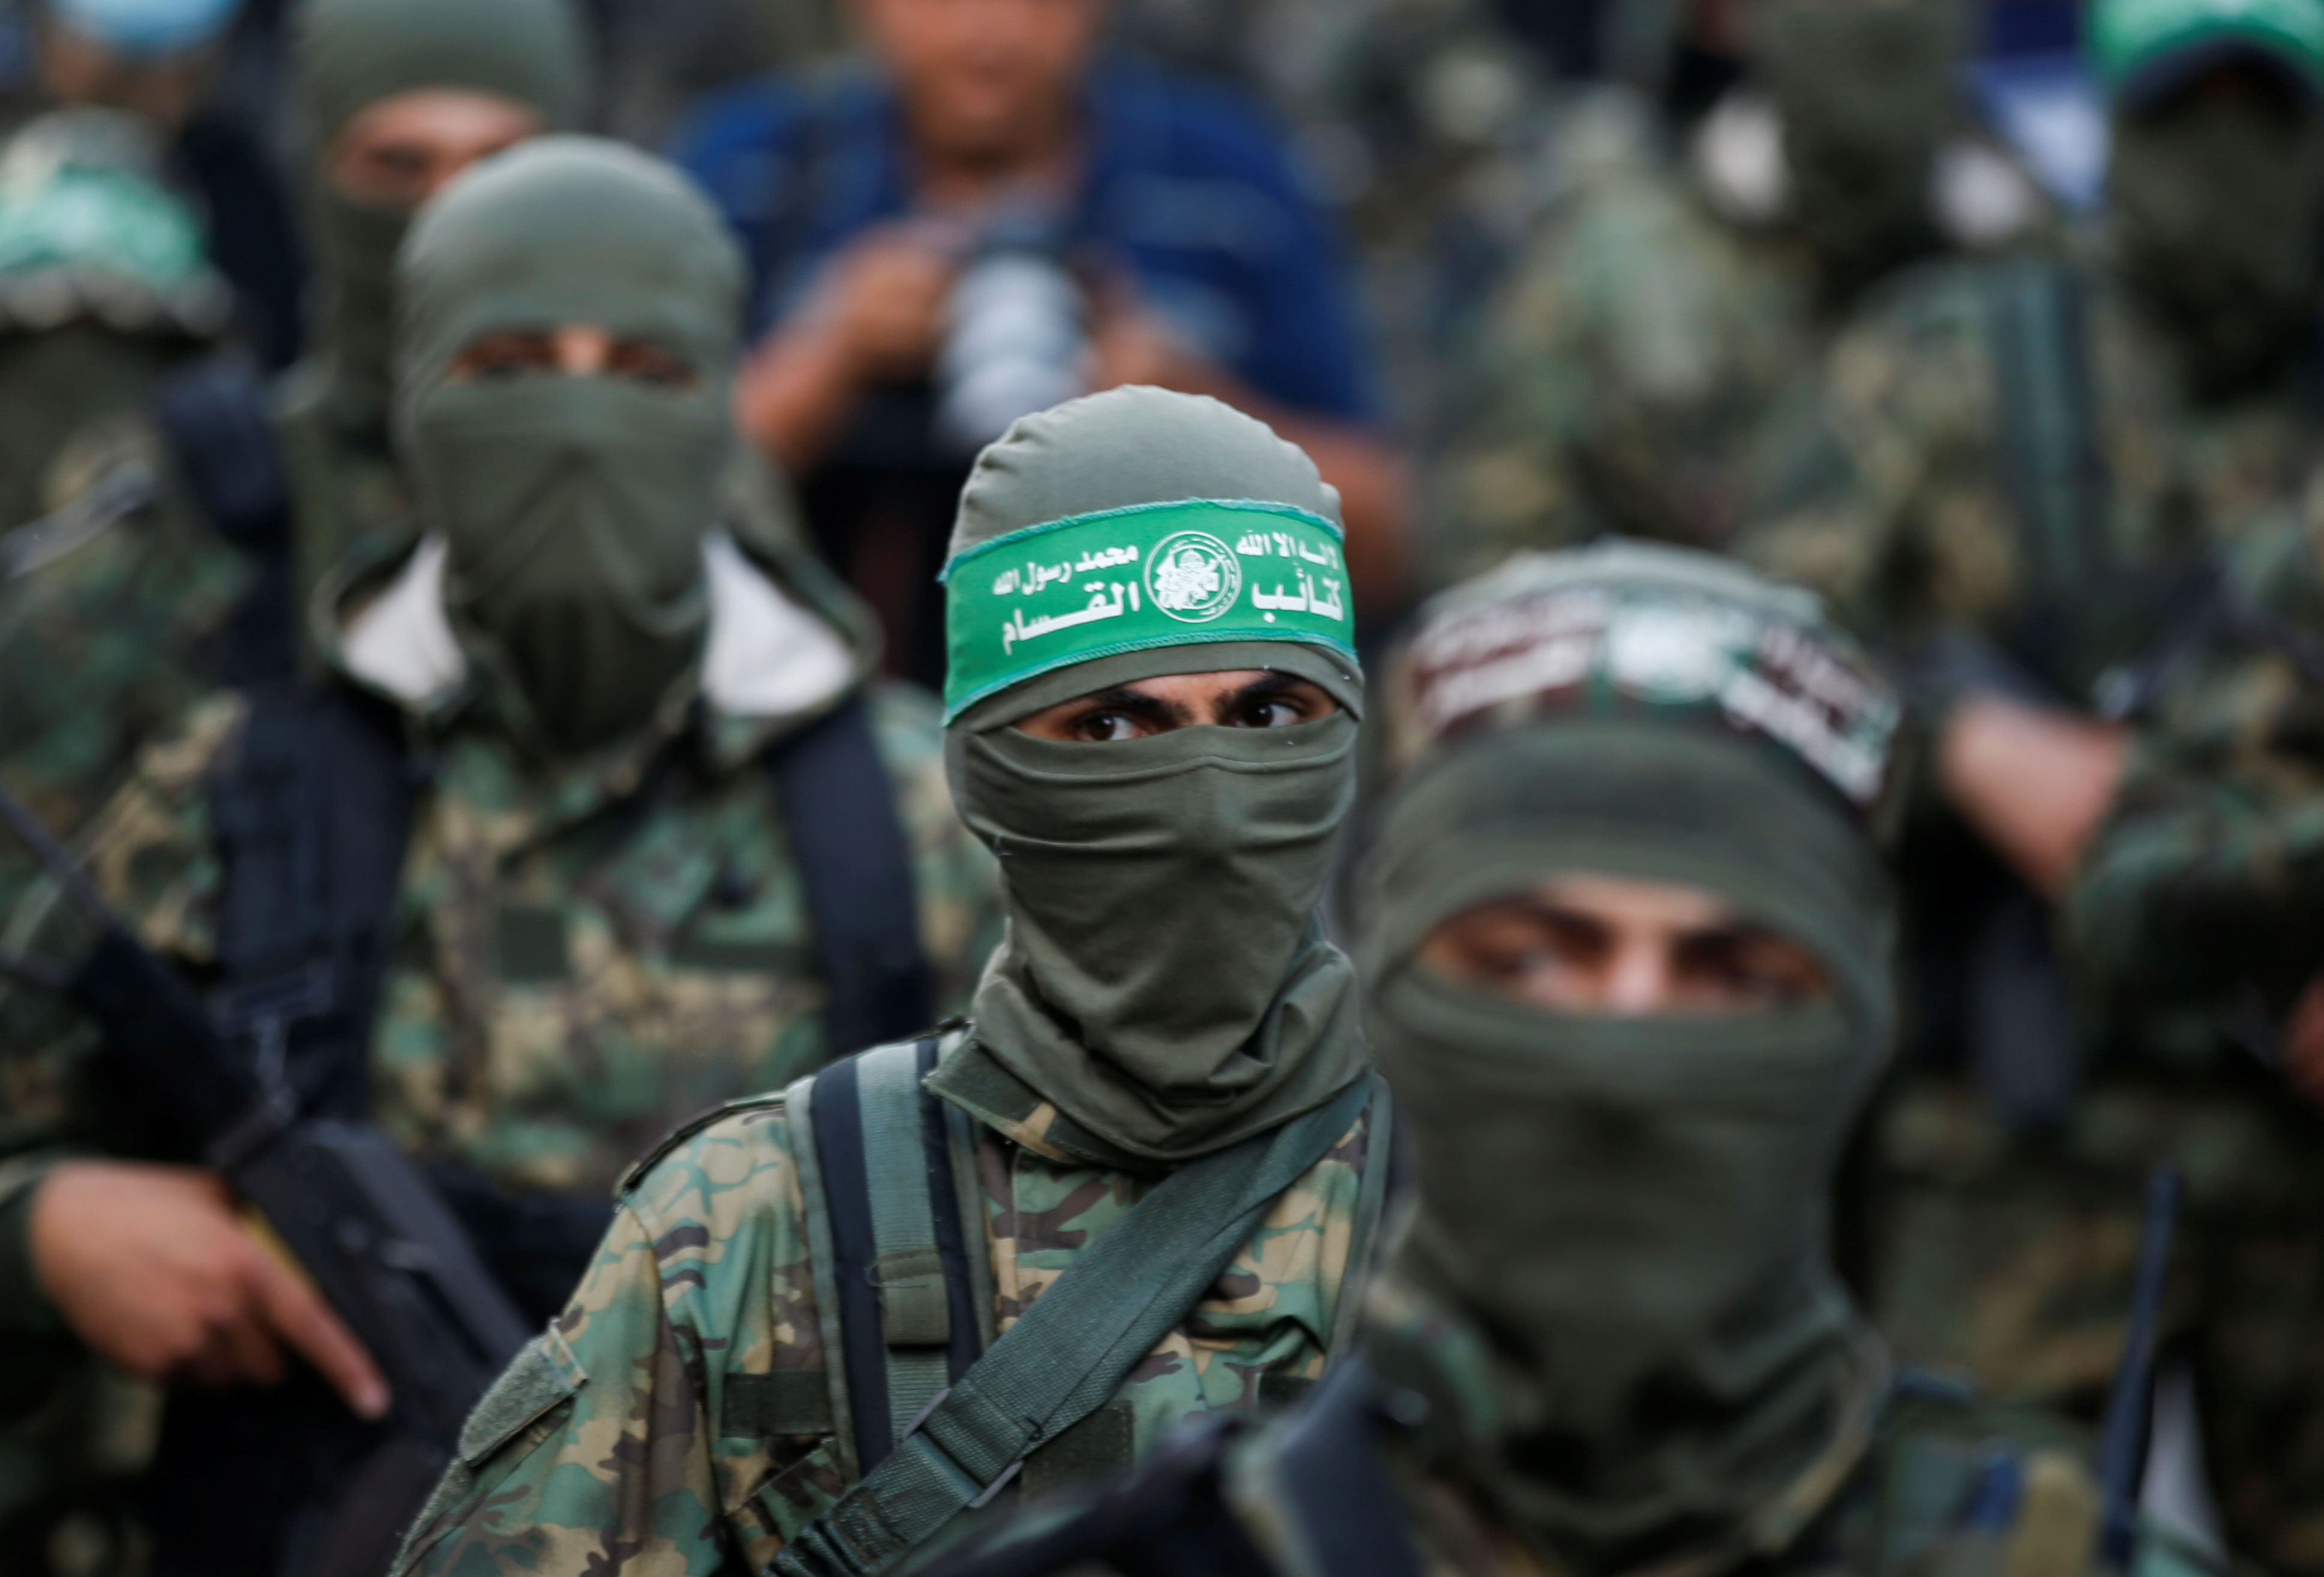 Palestinian Hamas militants take part in an anti-Israel rally in Gaza City May 22, 2021. REUTERS/Mohammed Salem